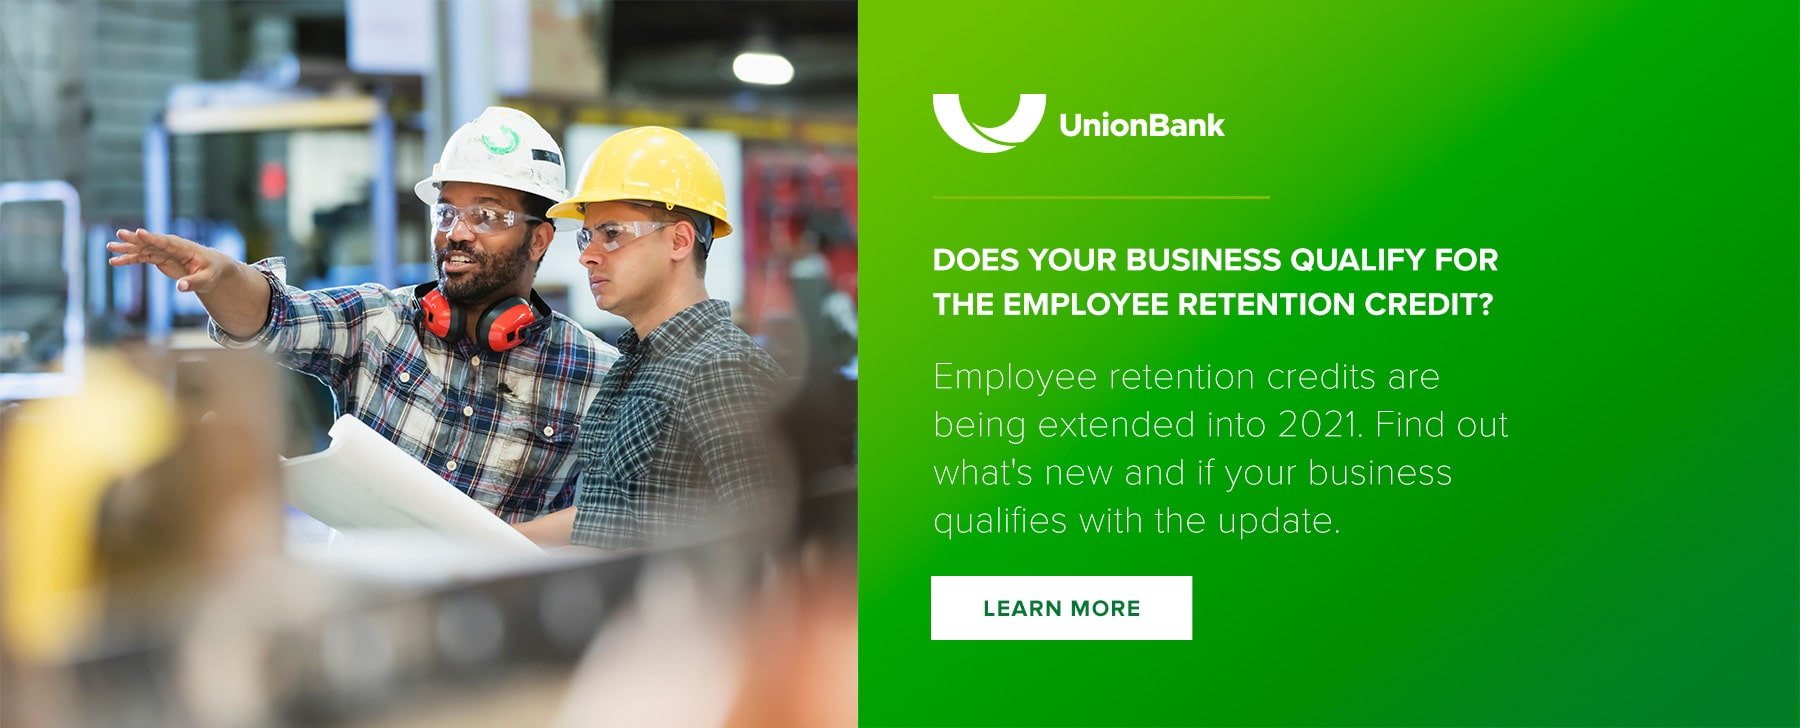 does your business qualify for the employee retention credit?